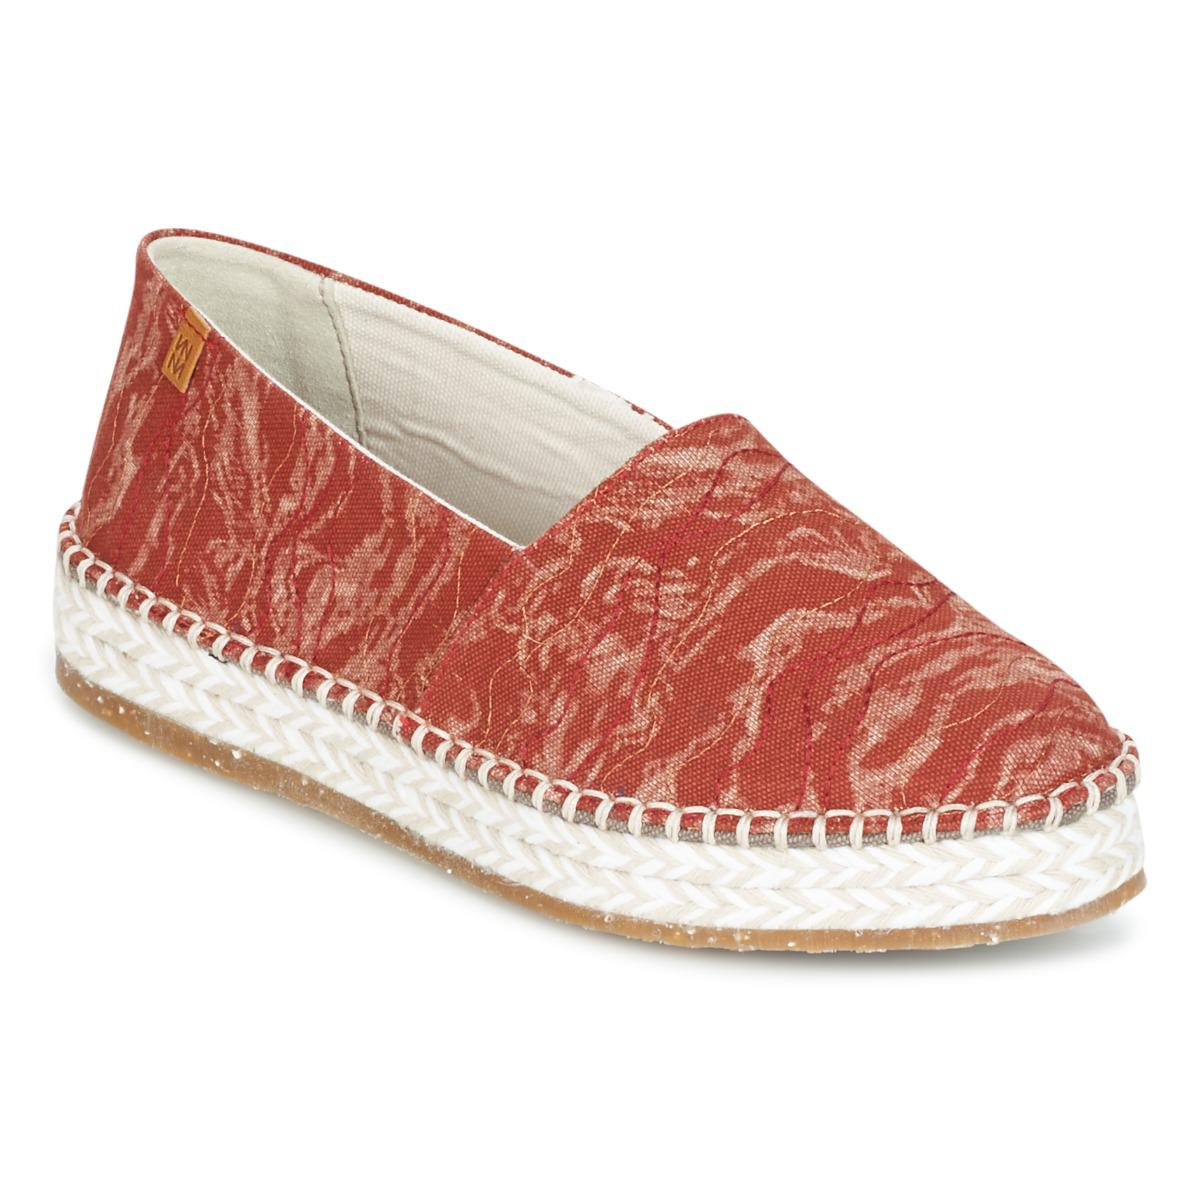 Cheap Sale Brand New Unisex El Naturalista SEAWEED CANVAS women's Espadrilles / Casual Shoes in Sale For Sale Aberdeen C4SwVfw